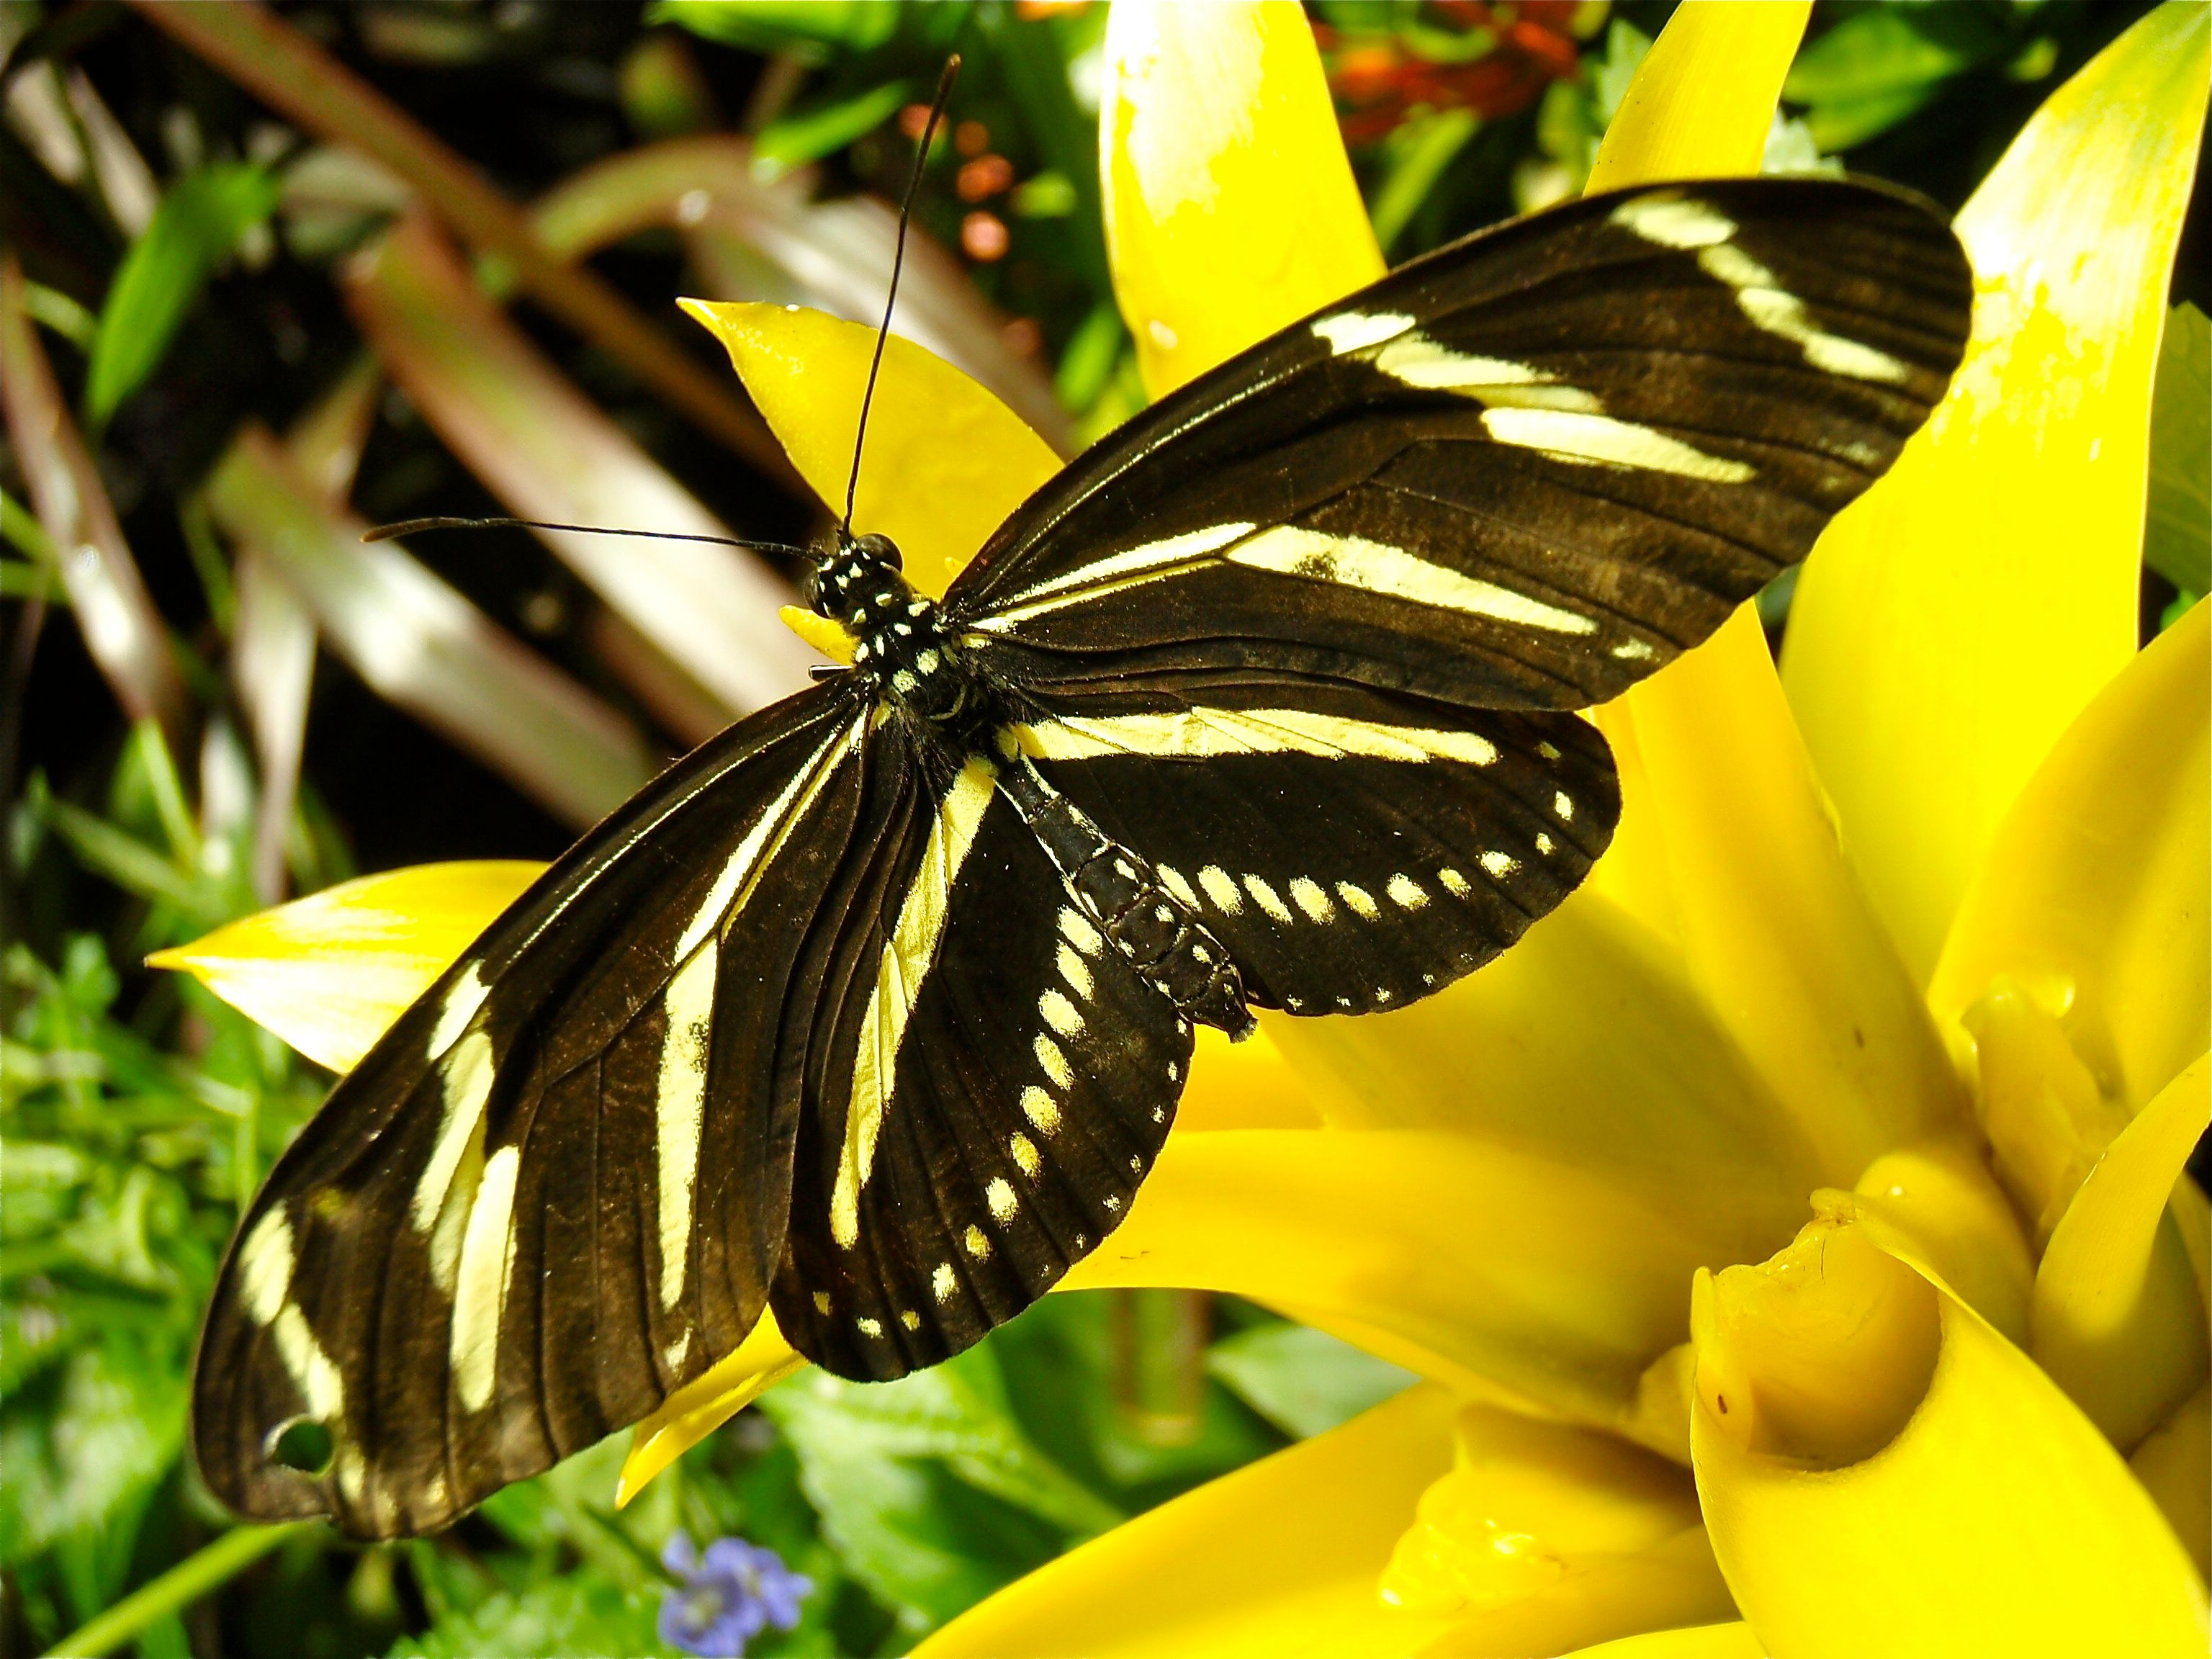 BEAUTIFUL...the Zebra Longwing is one of the species in the show Photo: AMNH/D. Finnin